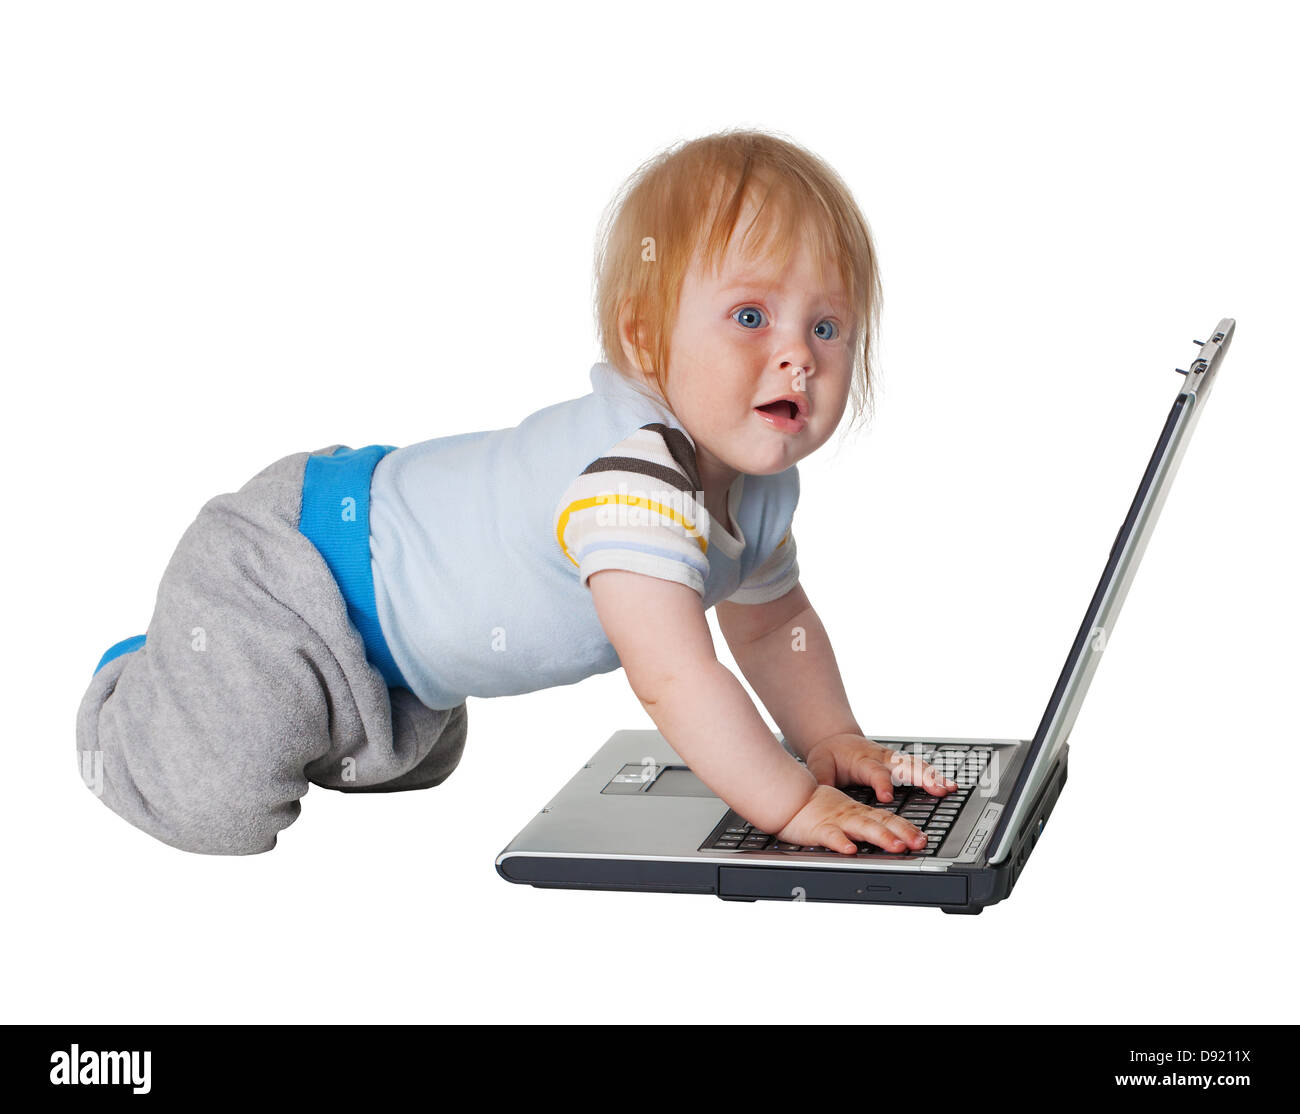 Despair - the difficulty of studying computer technology. Kid and laptop on white background - Stock Image